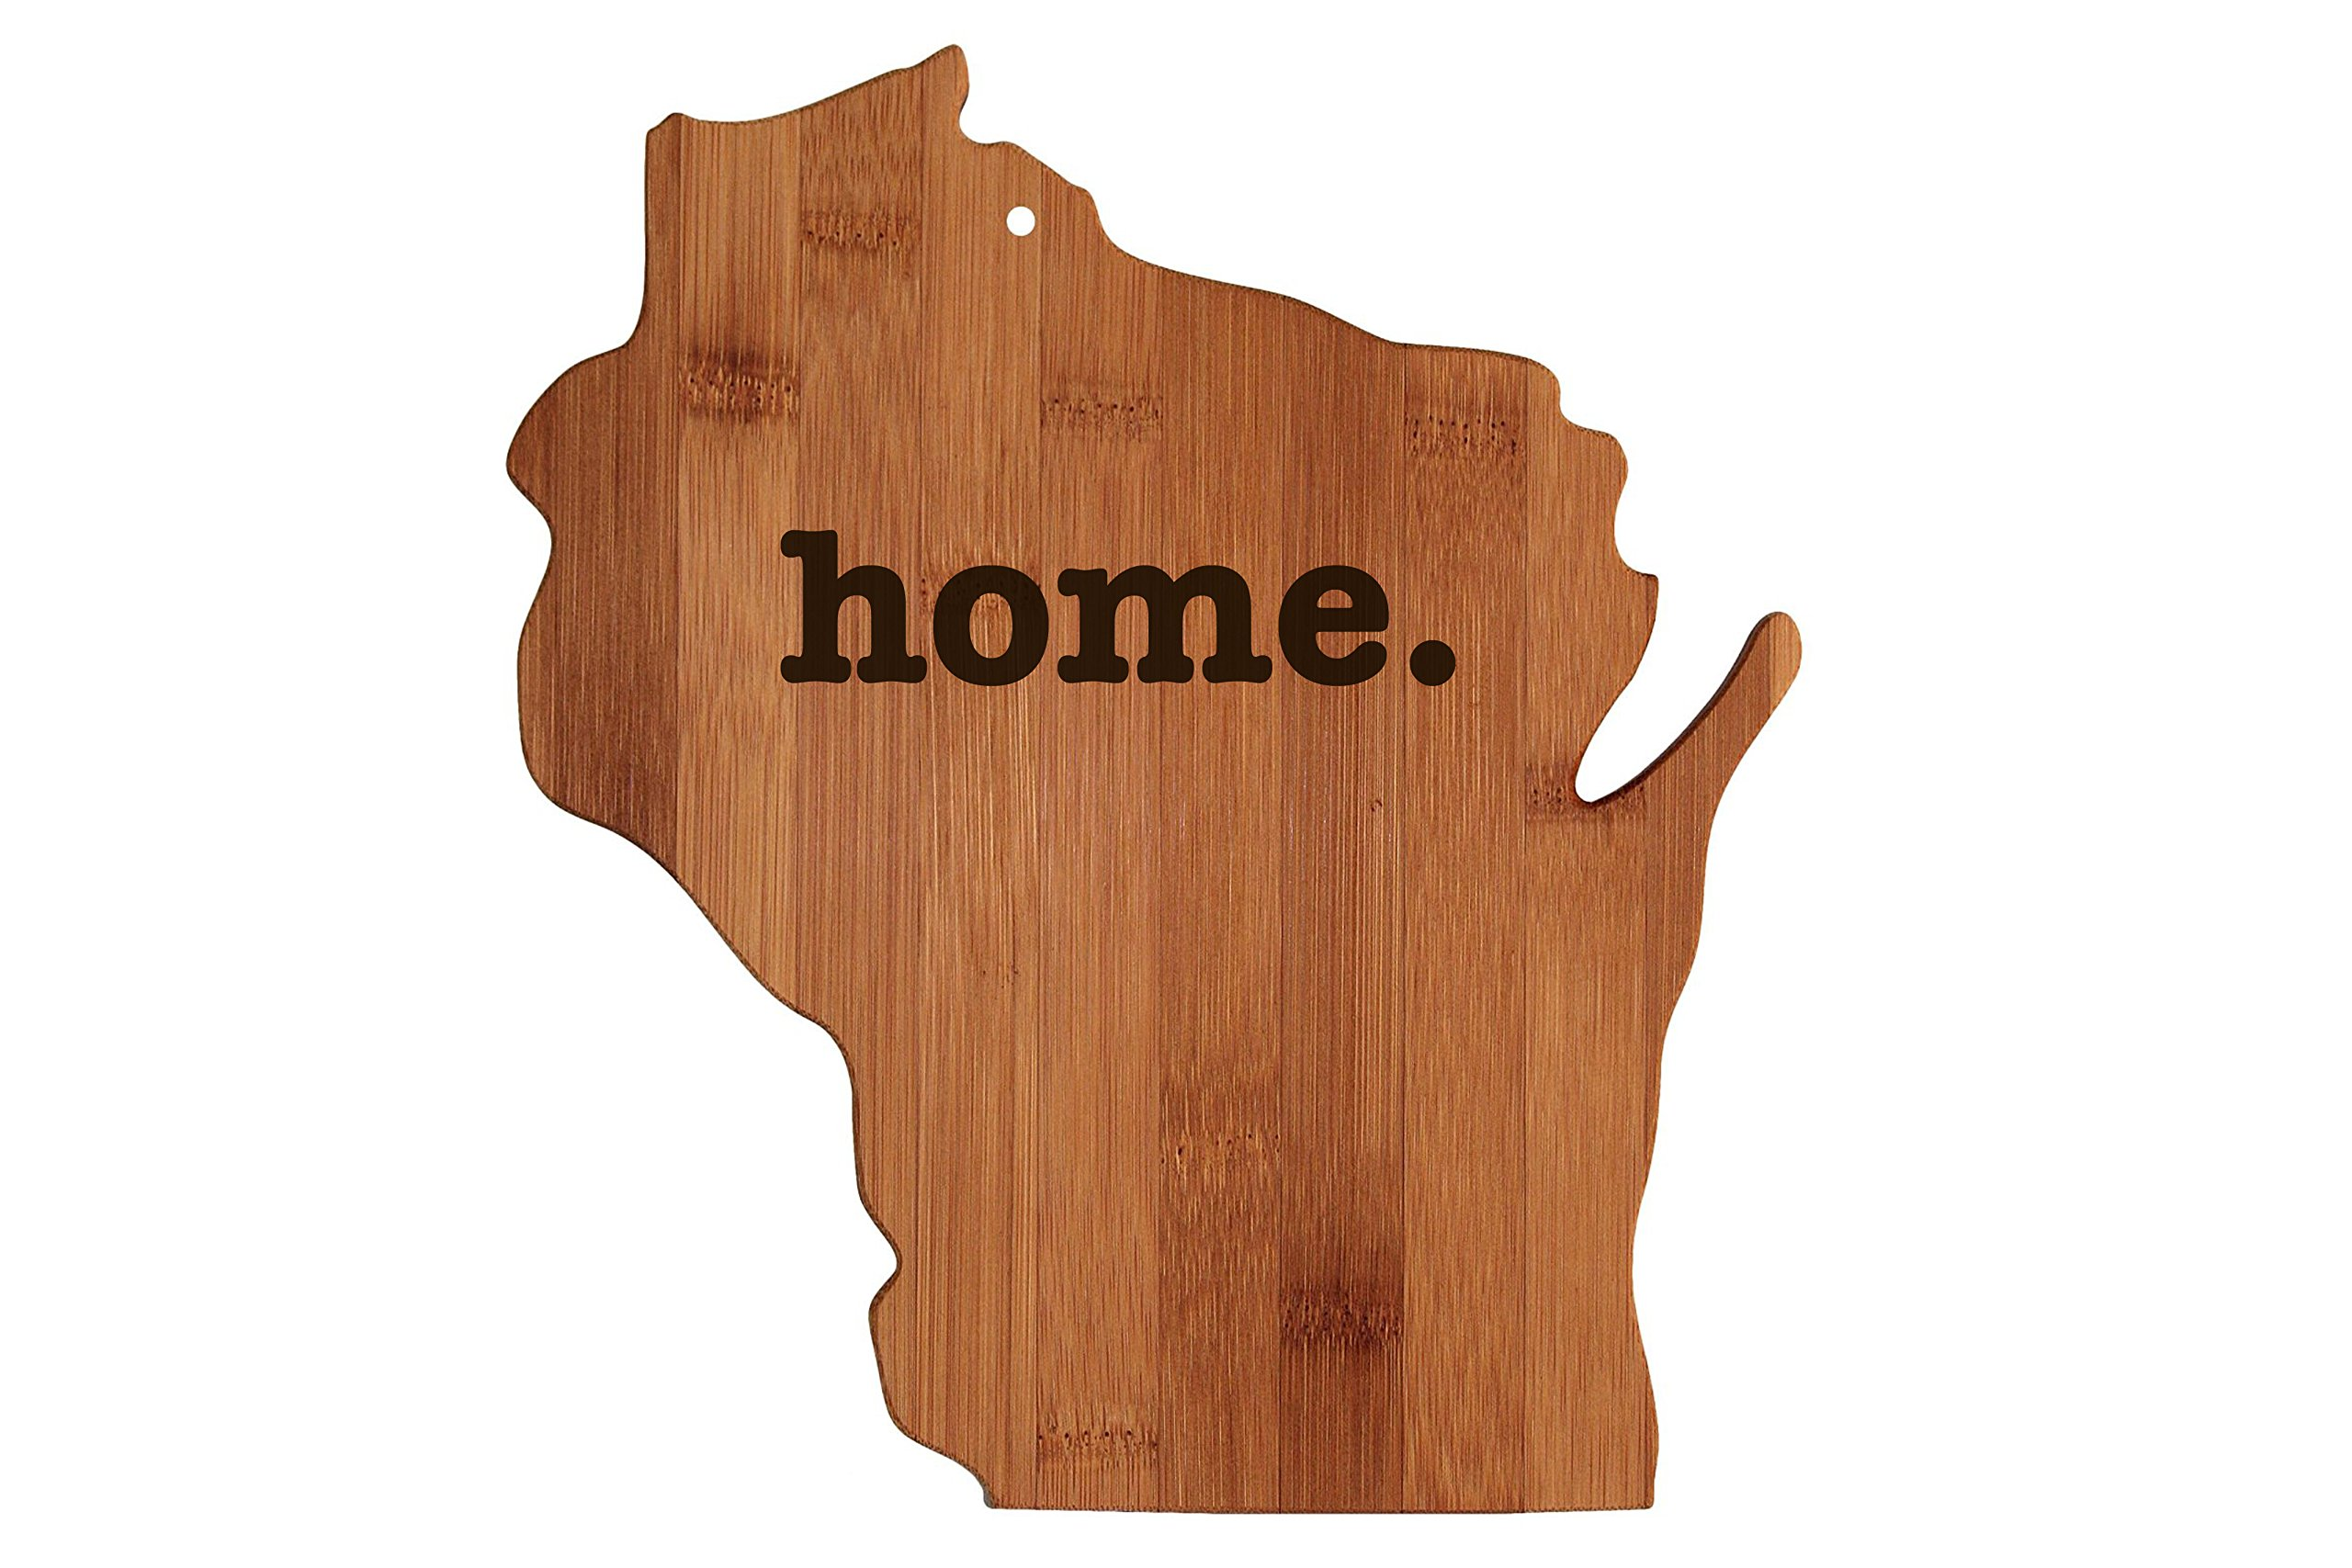 Wisconsin State Shaped Bamboo Wood Cutting Board Engraved home. Personalized For New Family Home Housewarming Wedding Moving Gift